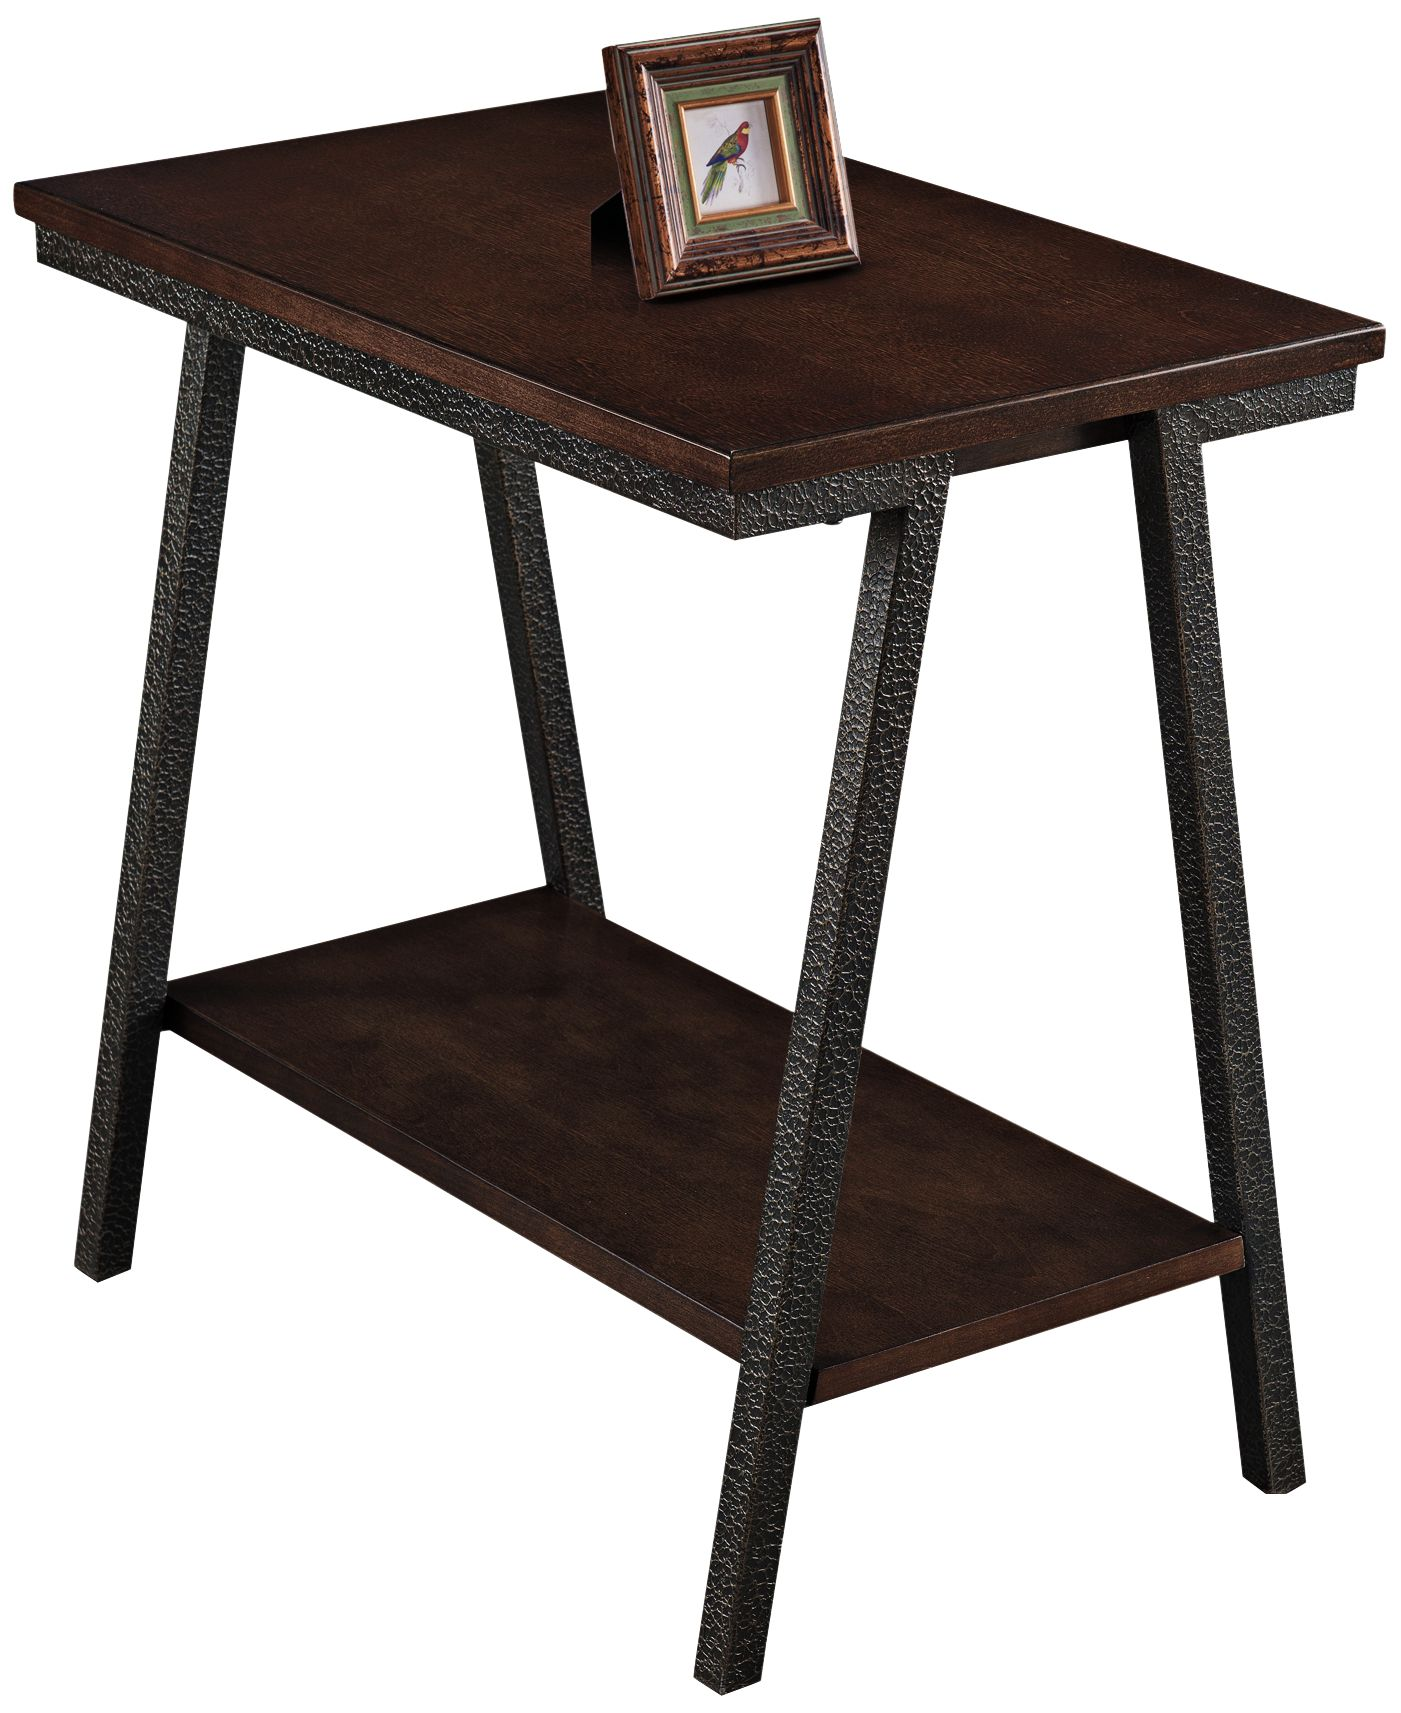 Leick Empiria Hand Finished Walnut Narrow Chairside Table